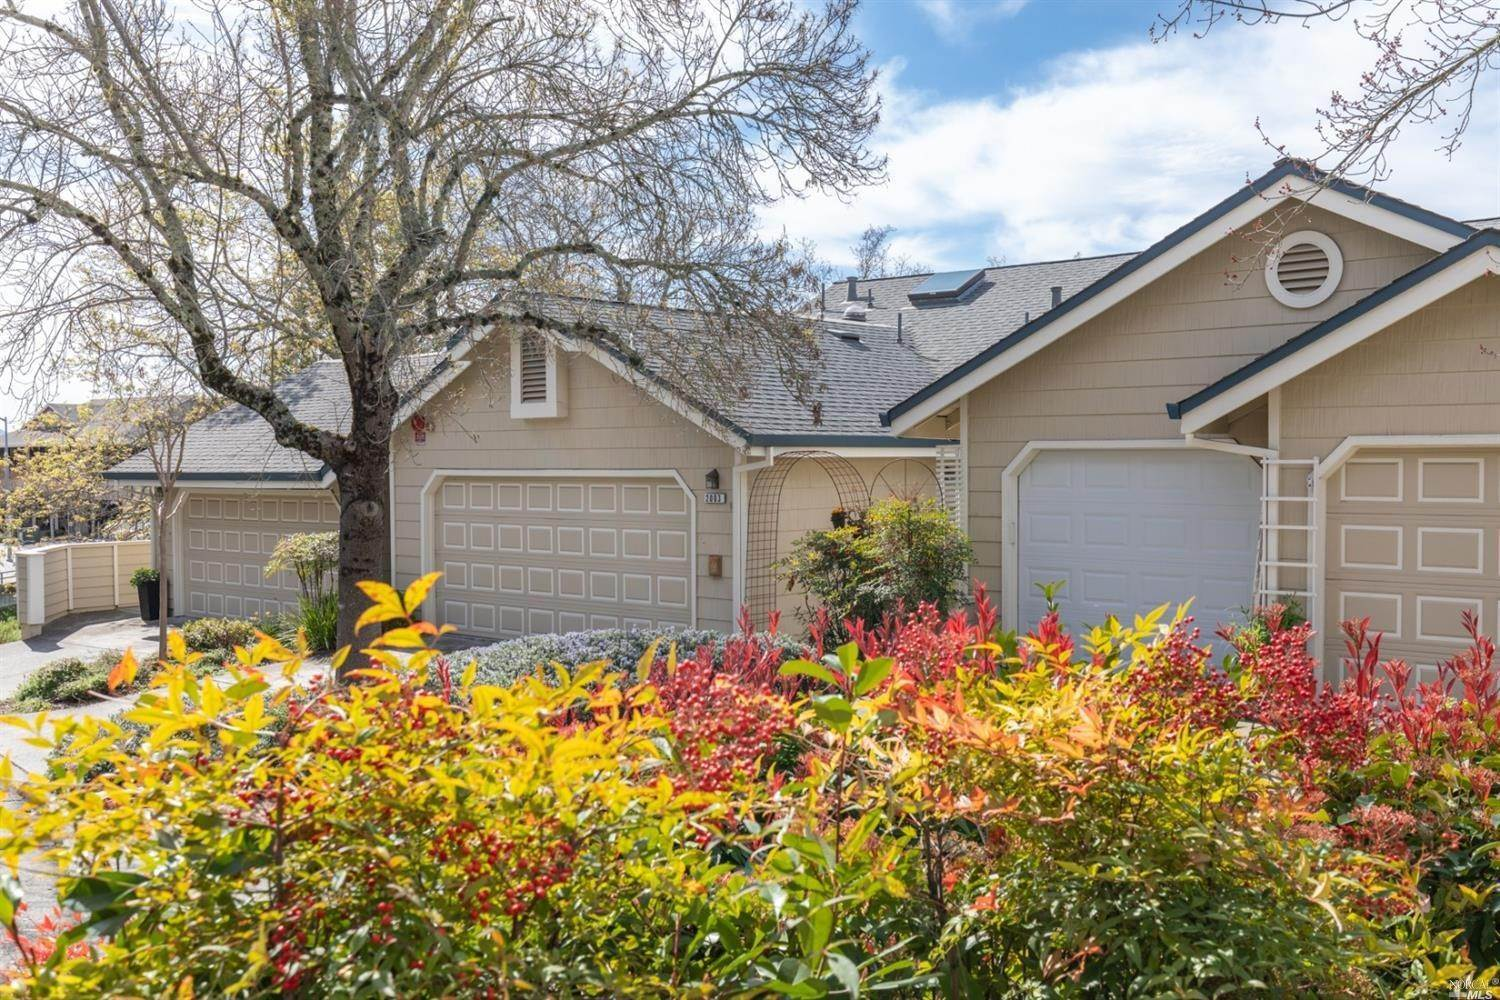 Condominiums for Sale at 2003 STONEFIELD Lane Santa Rosa, California 95403 United States